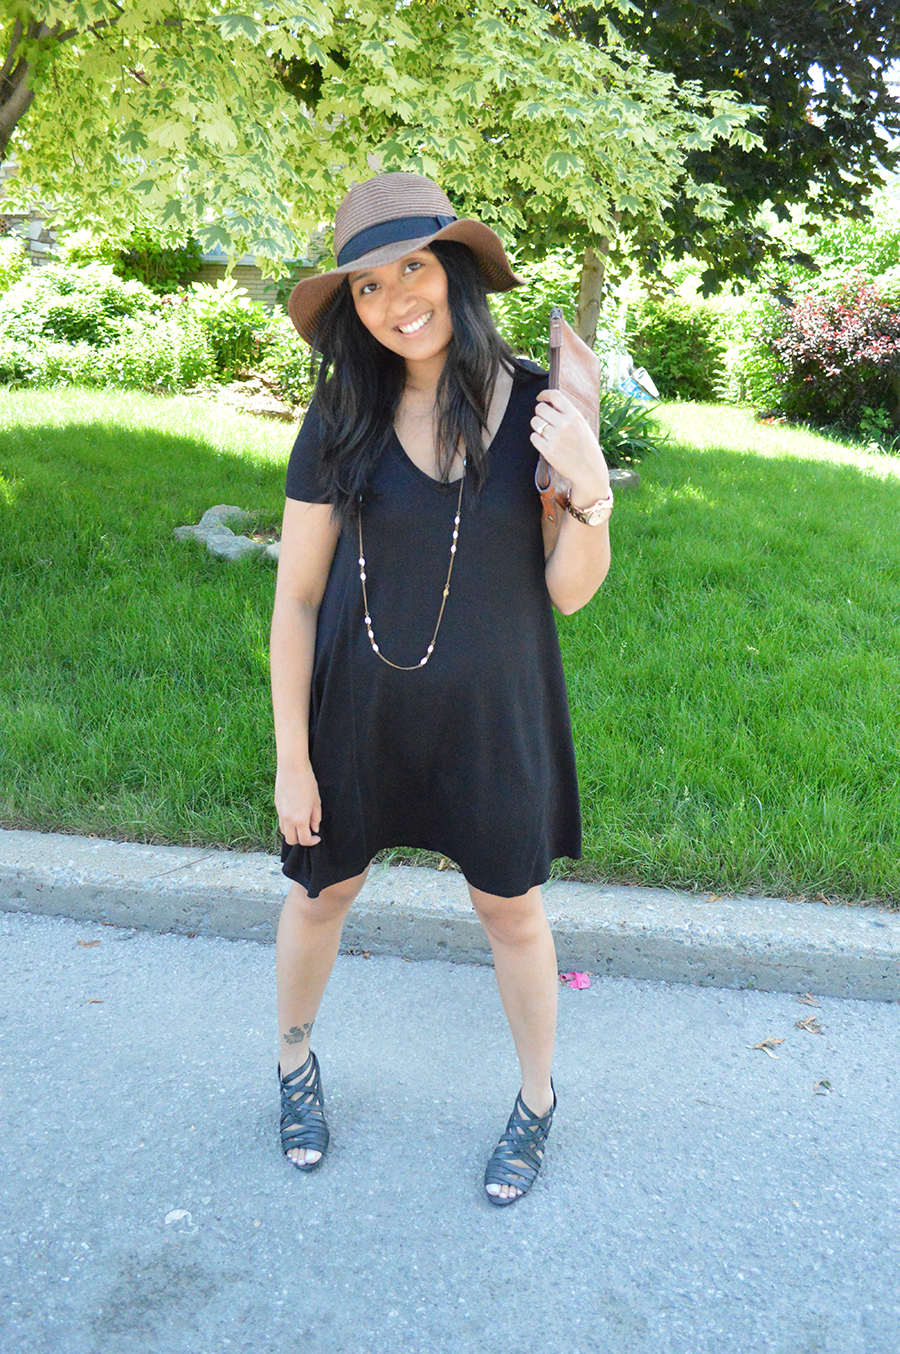 My thoughts on the little black dress - a must for every wardrobe!